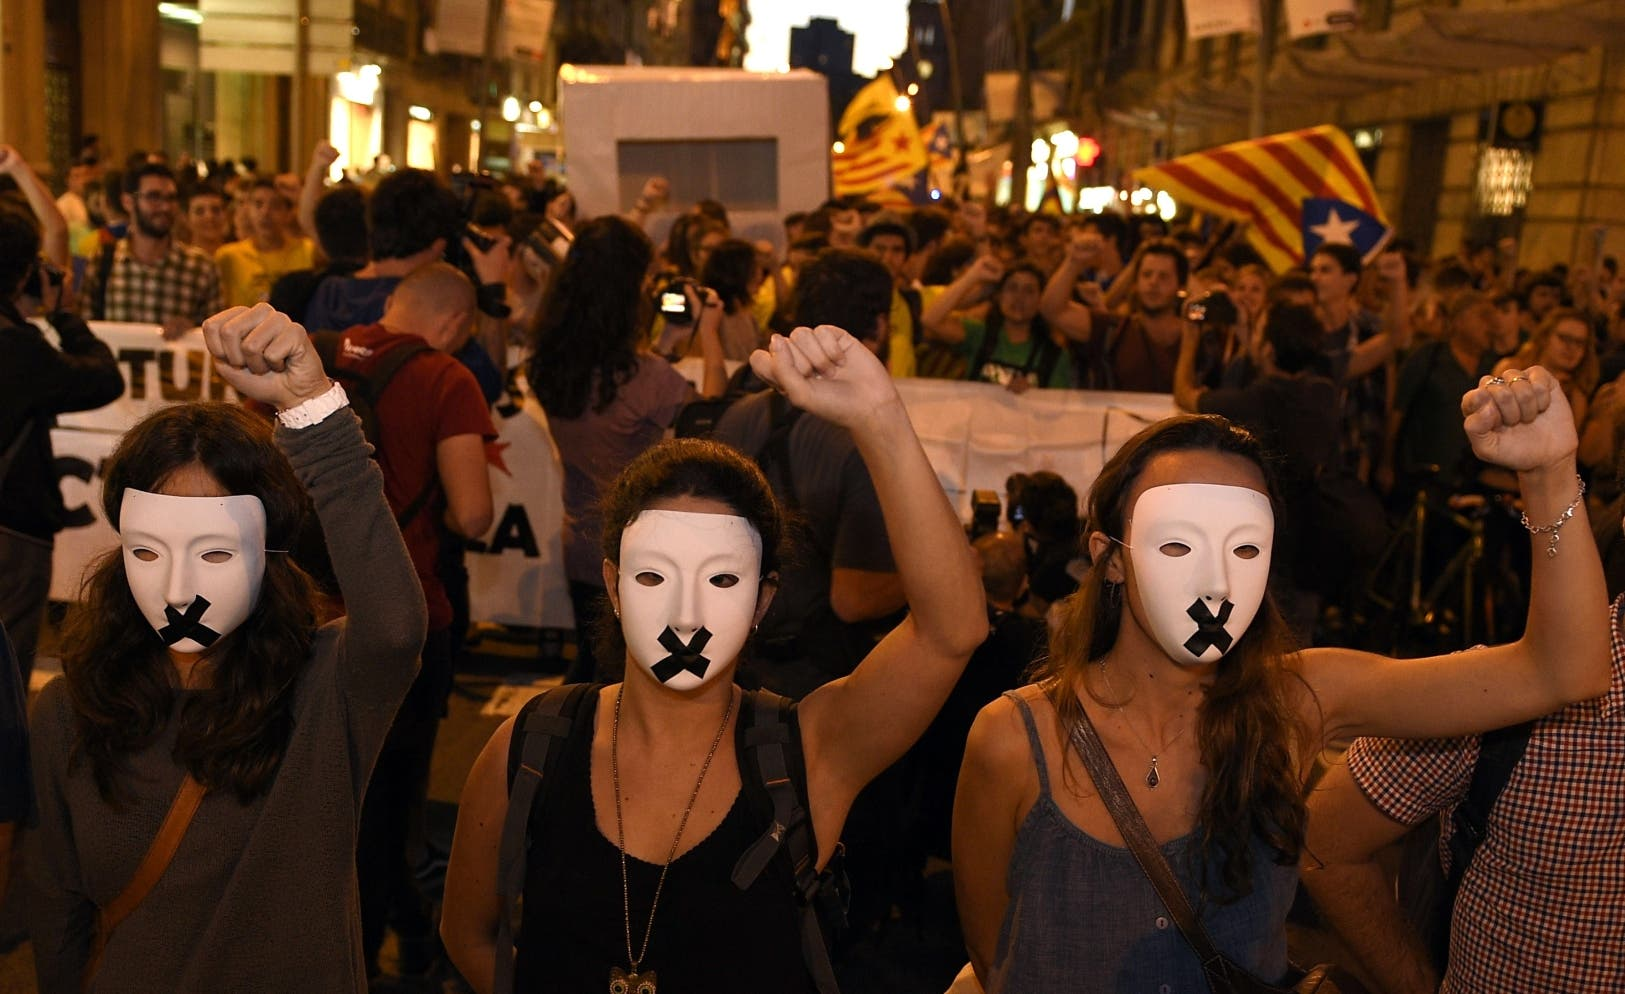 SPAIN-CATALONIA-STUDENTS-DEMO-REFERENDA